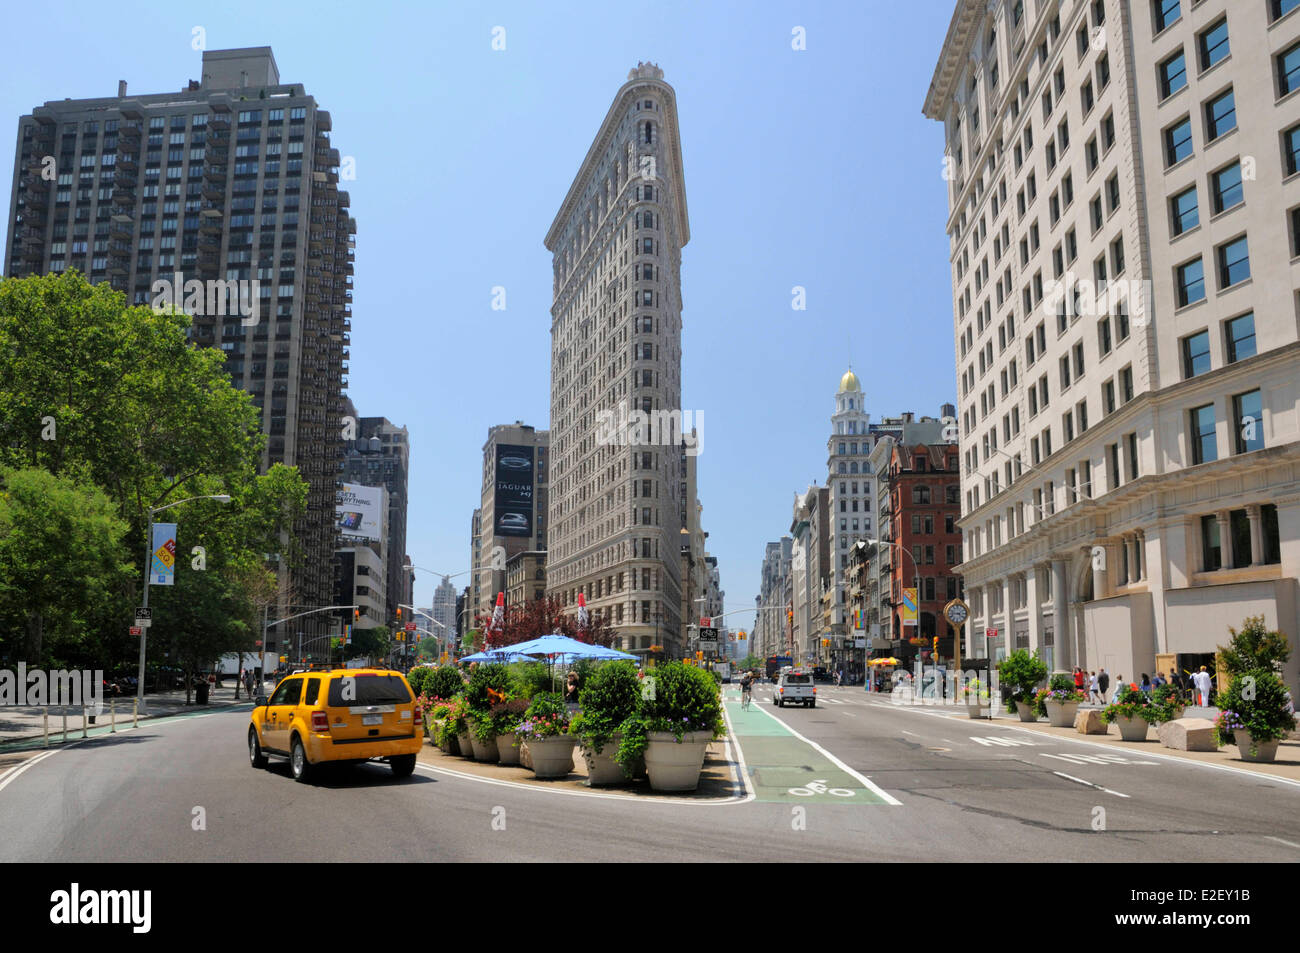 United States, New York, Flatiron Building at the intersection of 5th Avenue and Broadway - Stock Image